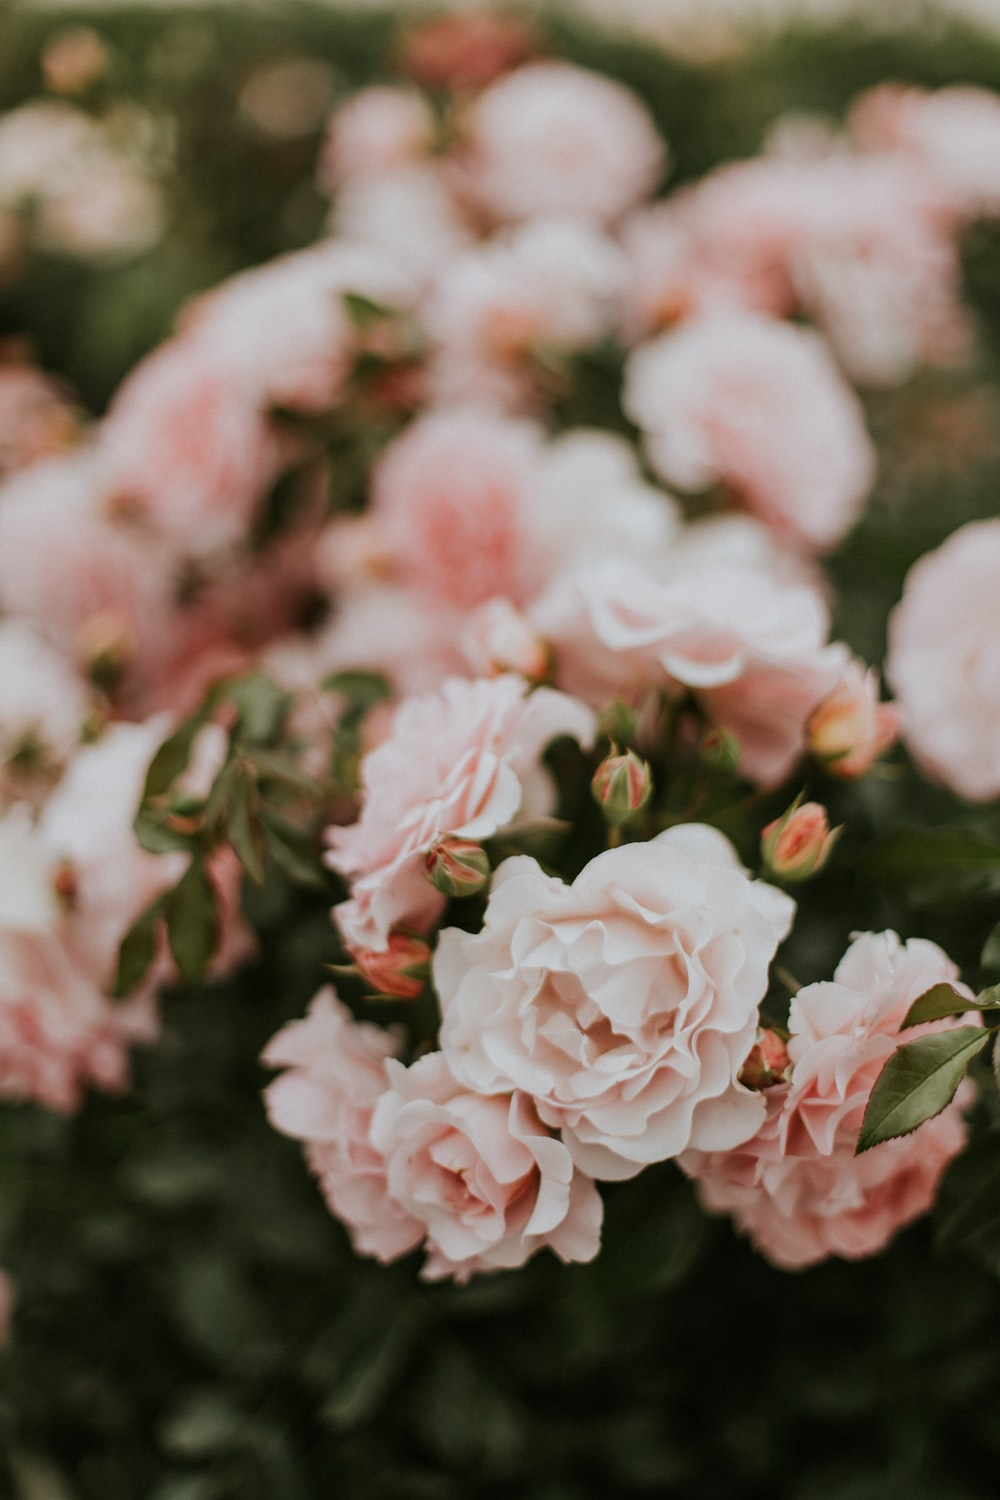 27 roses images download free images on unsplash pink petaled flowers mightylinksfo